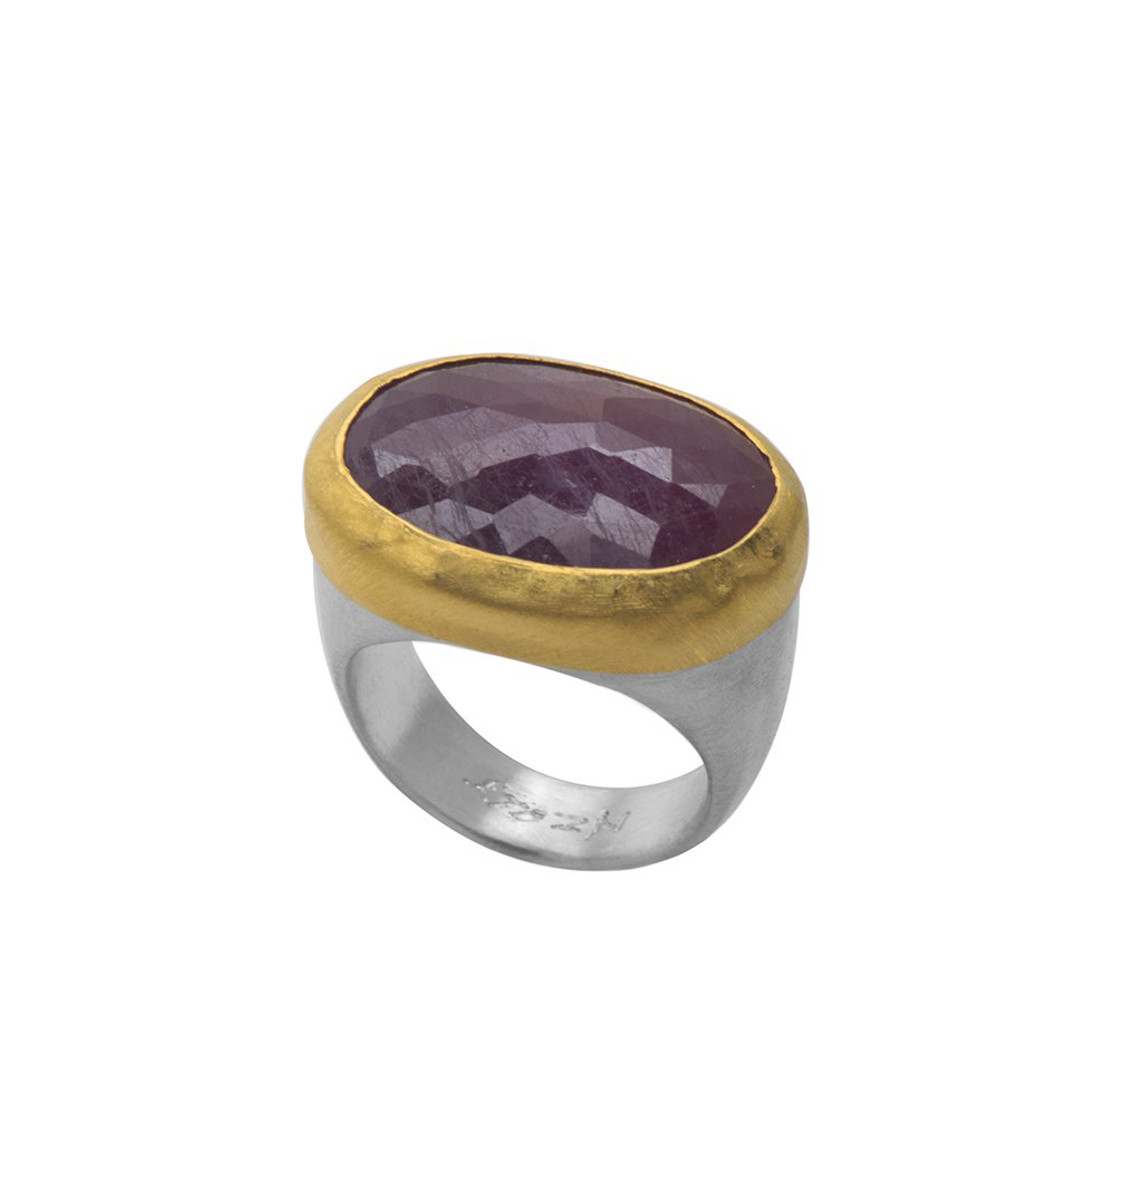 Celebration Ring by Nava Zahavi - New Arrival